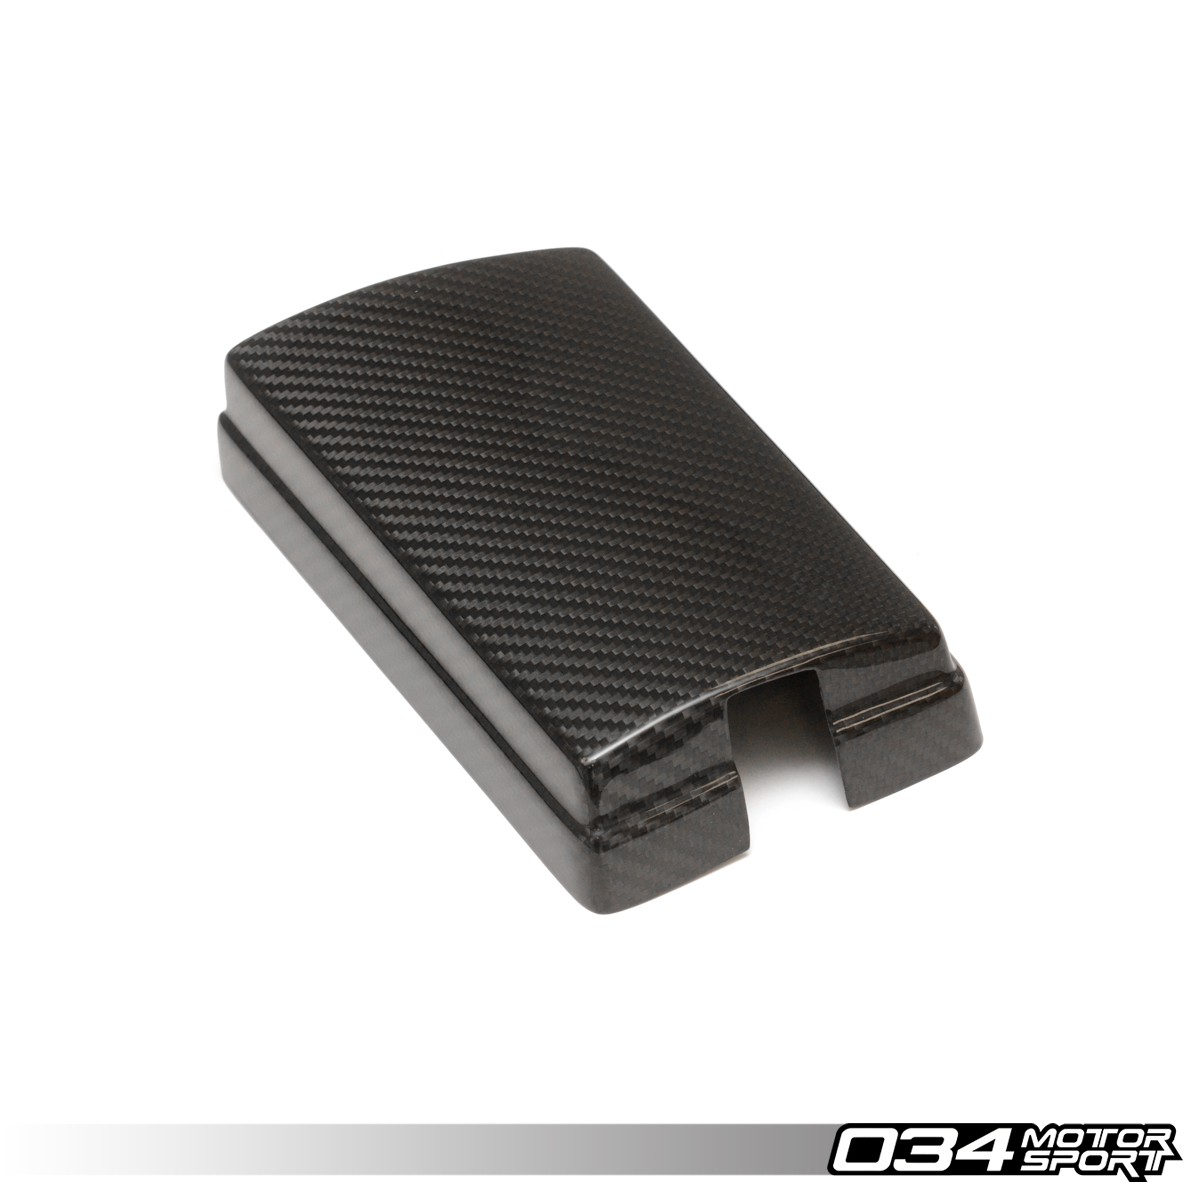 carbon fiber fuse box cover mkvii volkswagen gti golf r 8v 8v rh store  034motorsport com 2002 VW Passat Fuse Box Diagram Volkswagen Fuse Box  Diagram